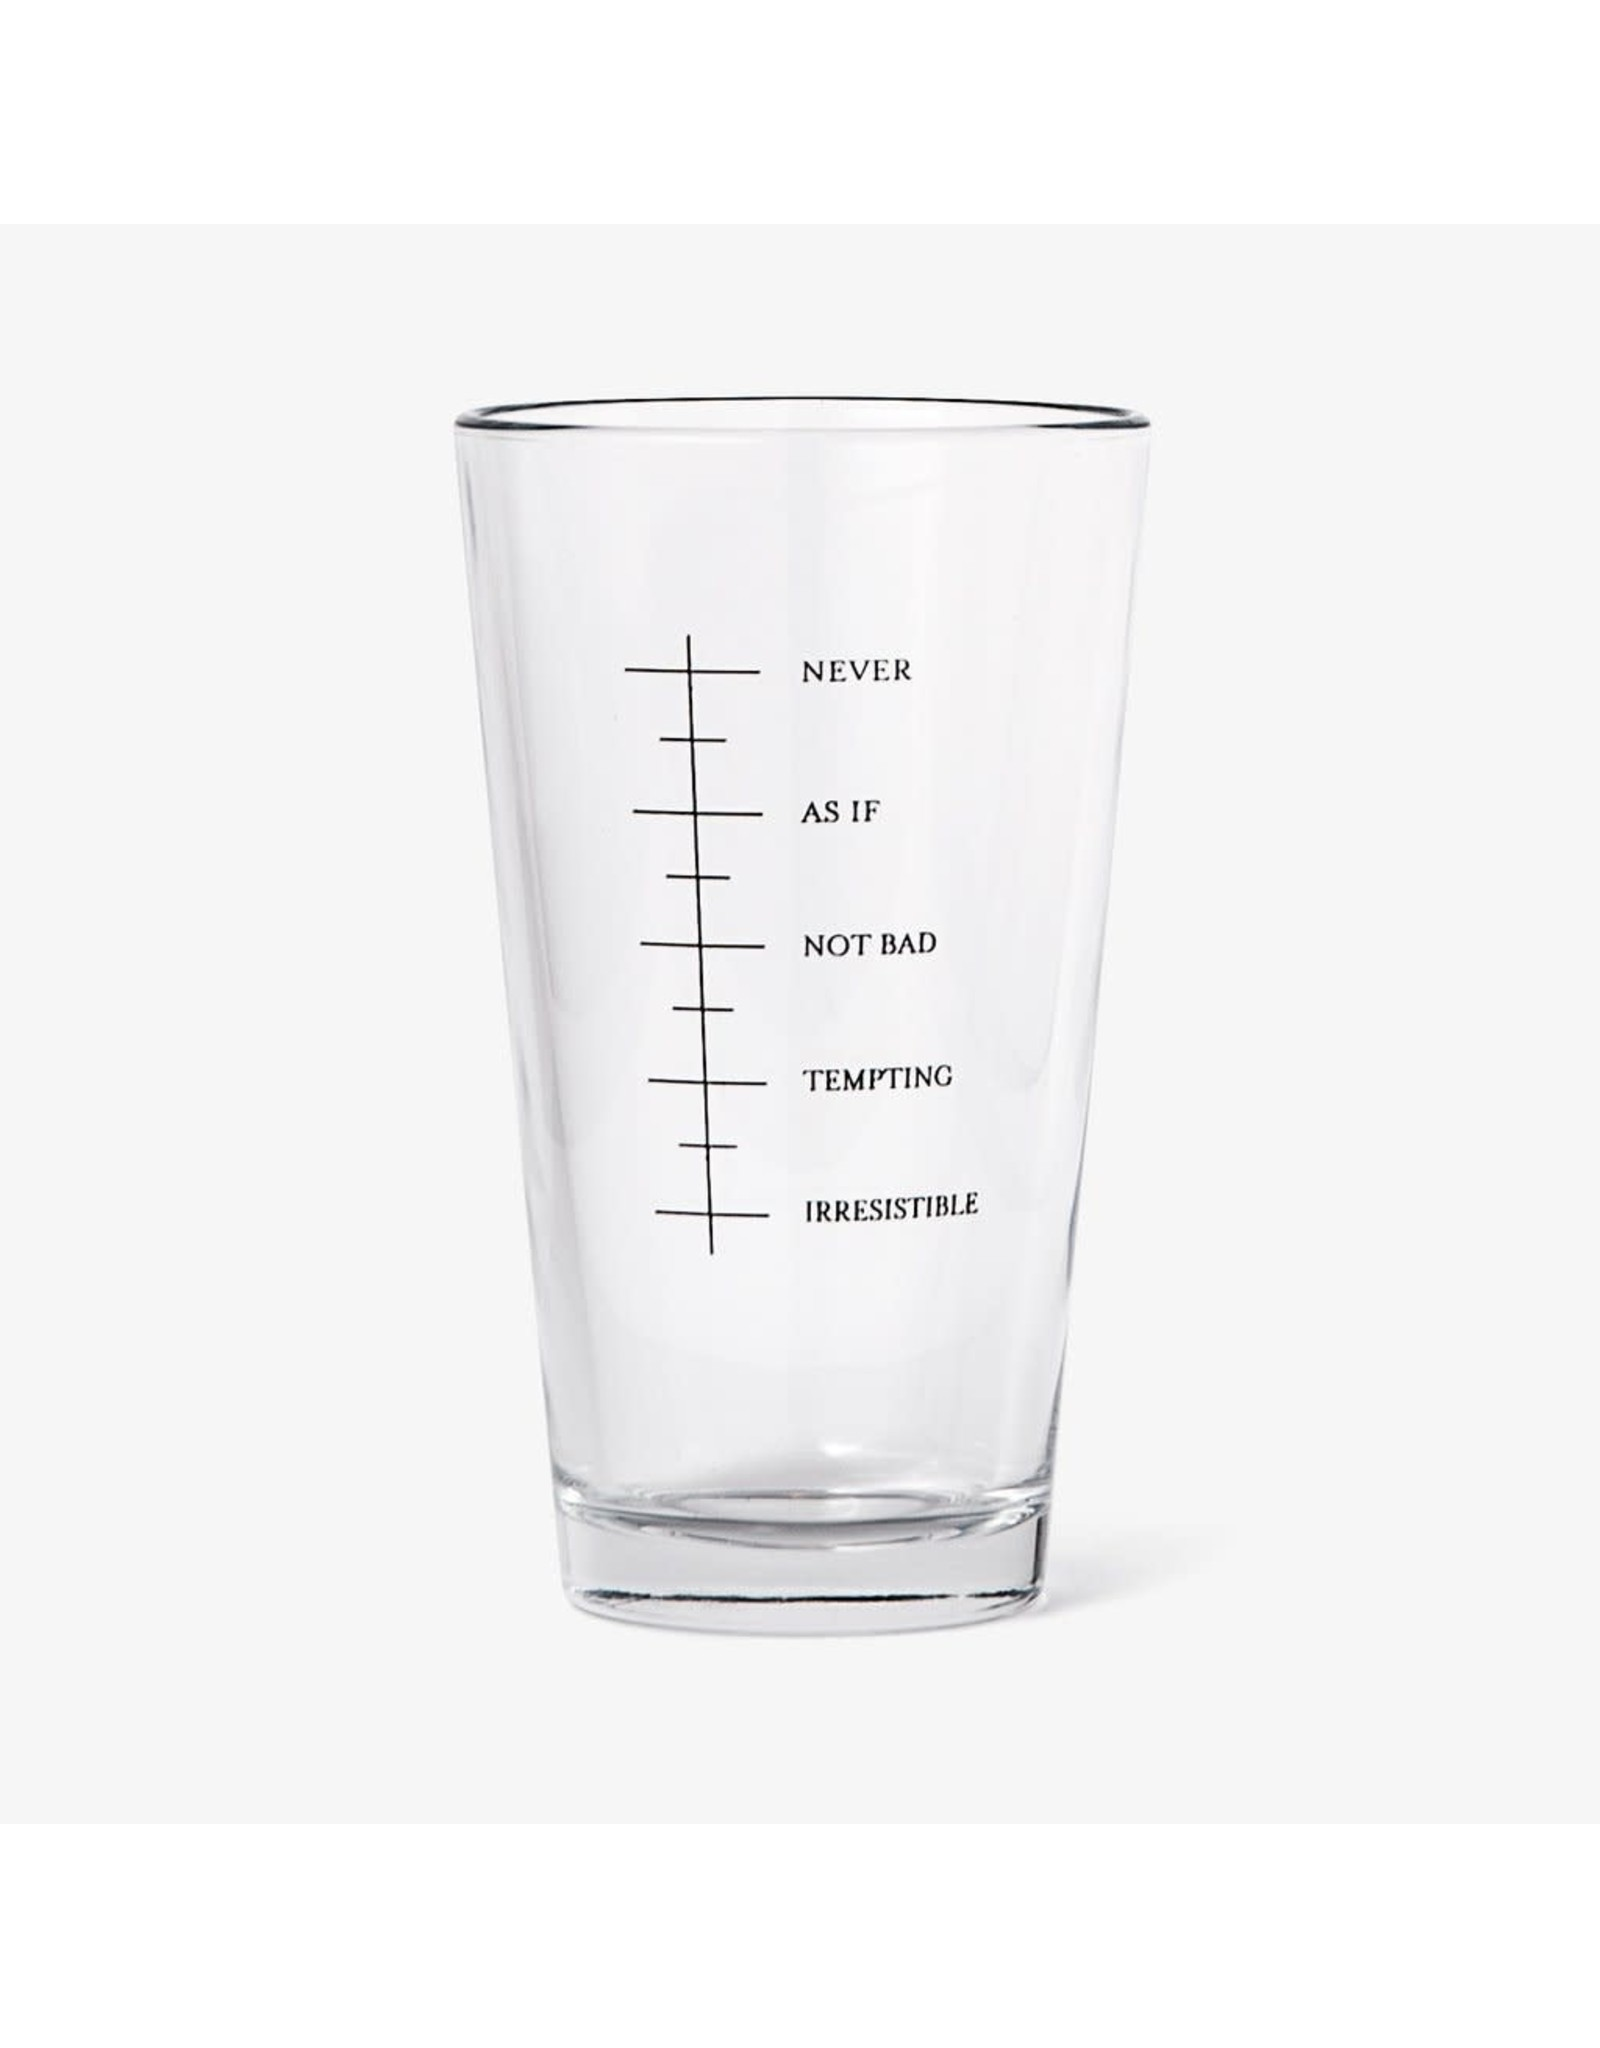 Set Editions Beer Goggles, 16oz Pint Glass